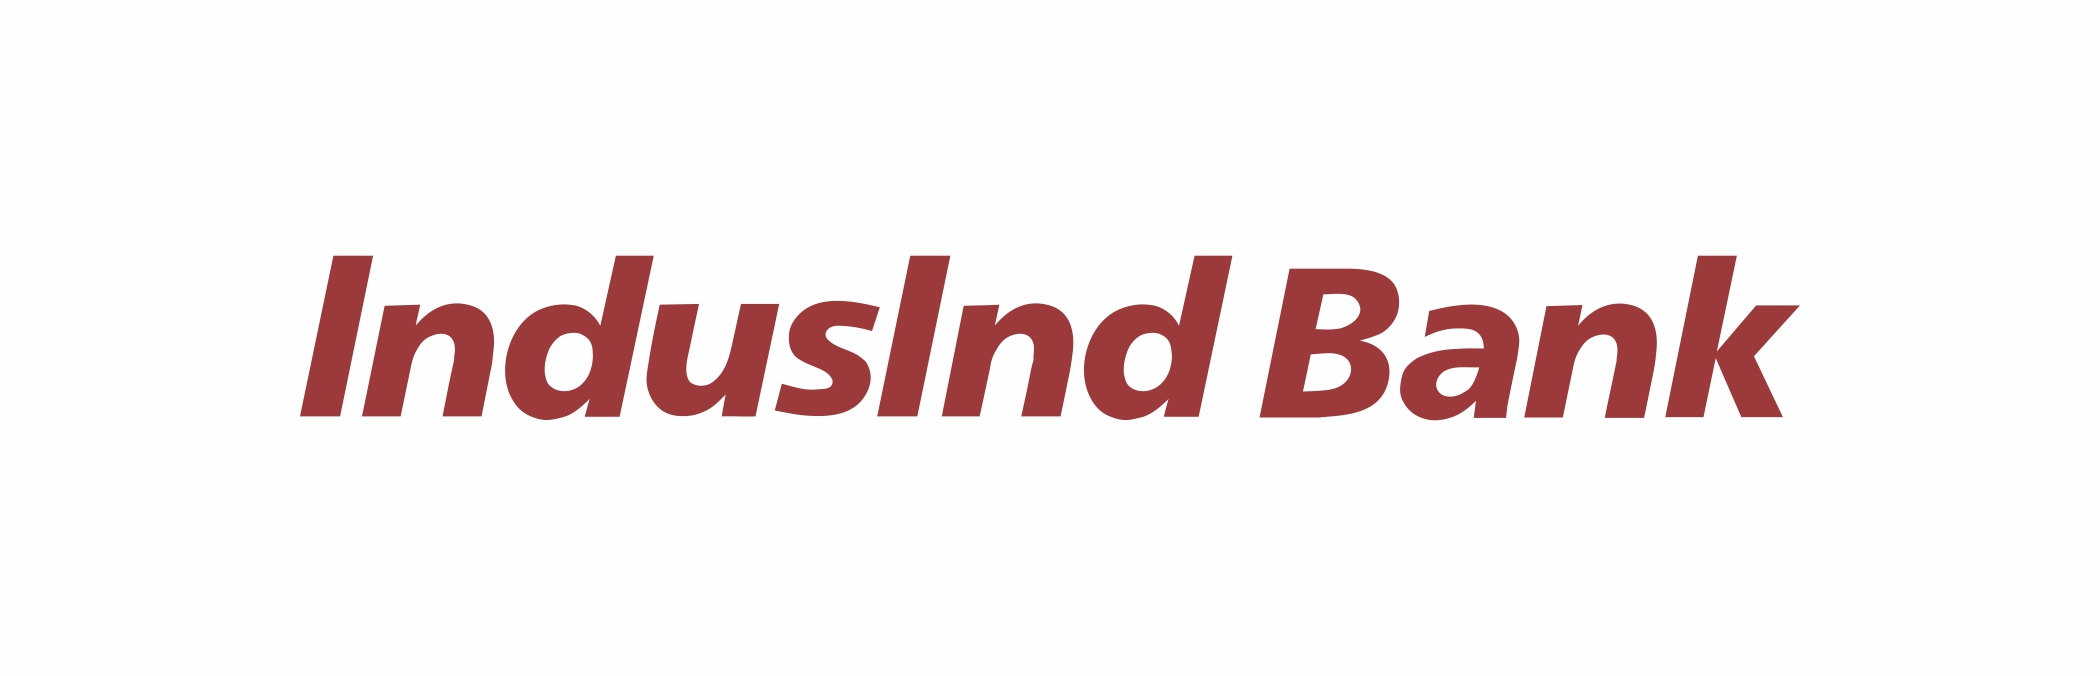 IndusInd Bank and Bharat Financial Inclusion Sign Exclusivity Agreement for Merger